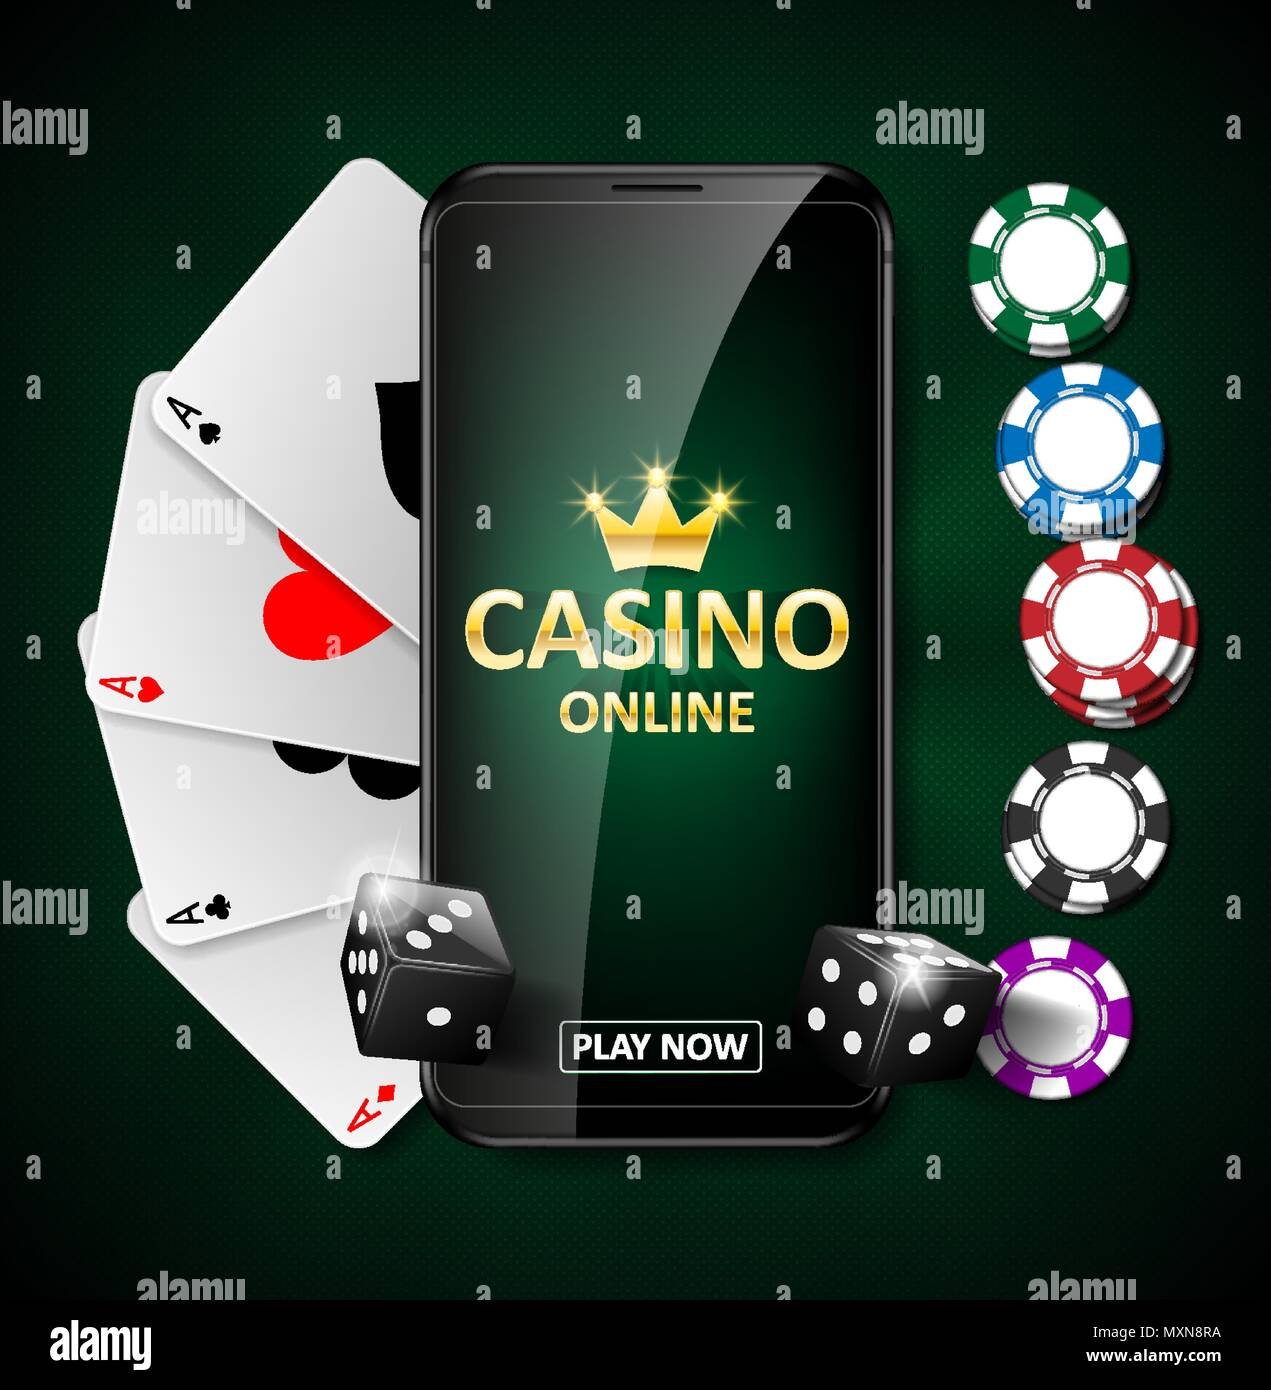 Online Internet Casino Marketing Banner Phone App With Dice Poker Chips And Playing Cards Playing Web Poker And Gambling Casino Games Vector Illustration Stock Vector Image Art Alamy